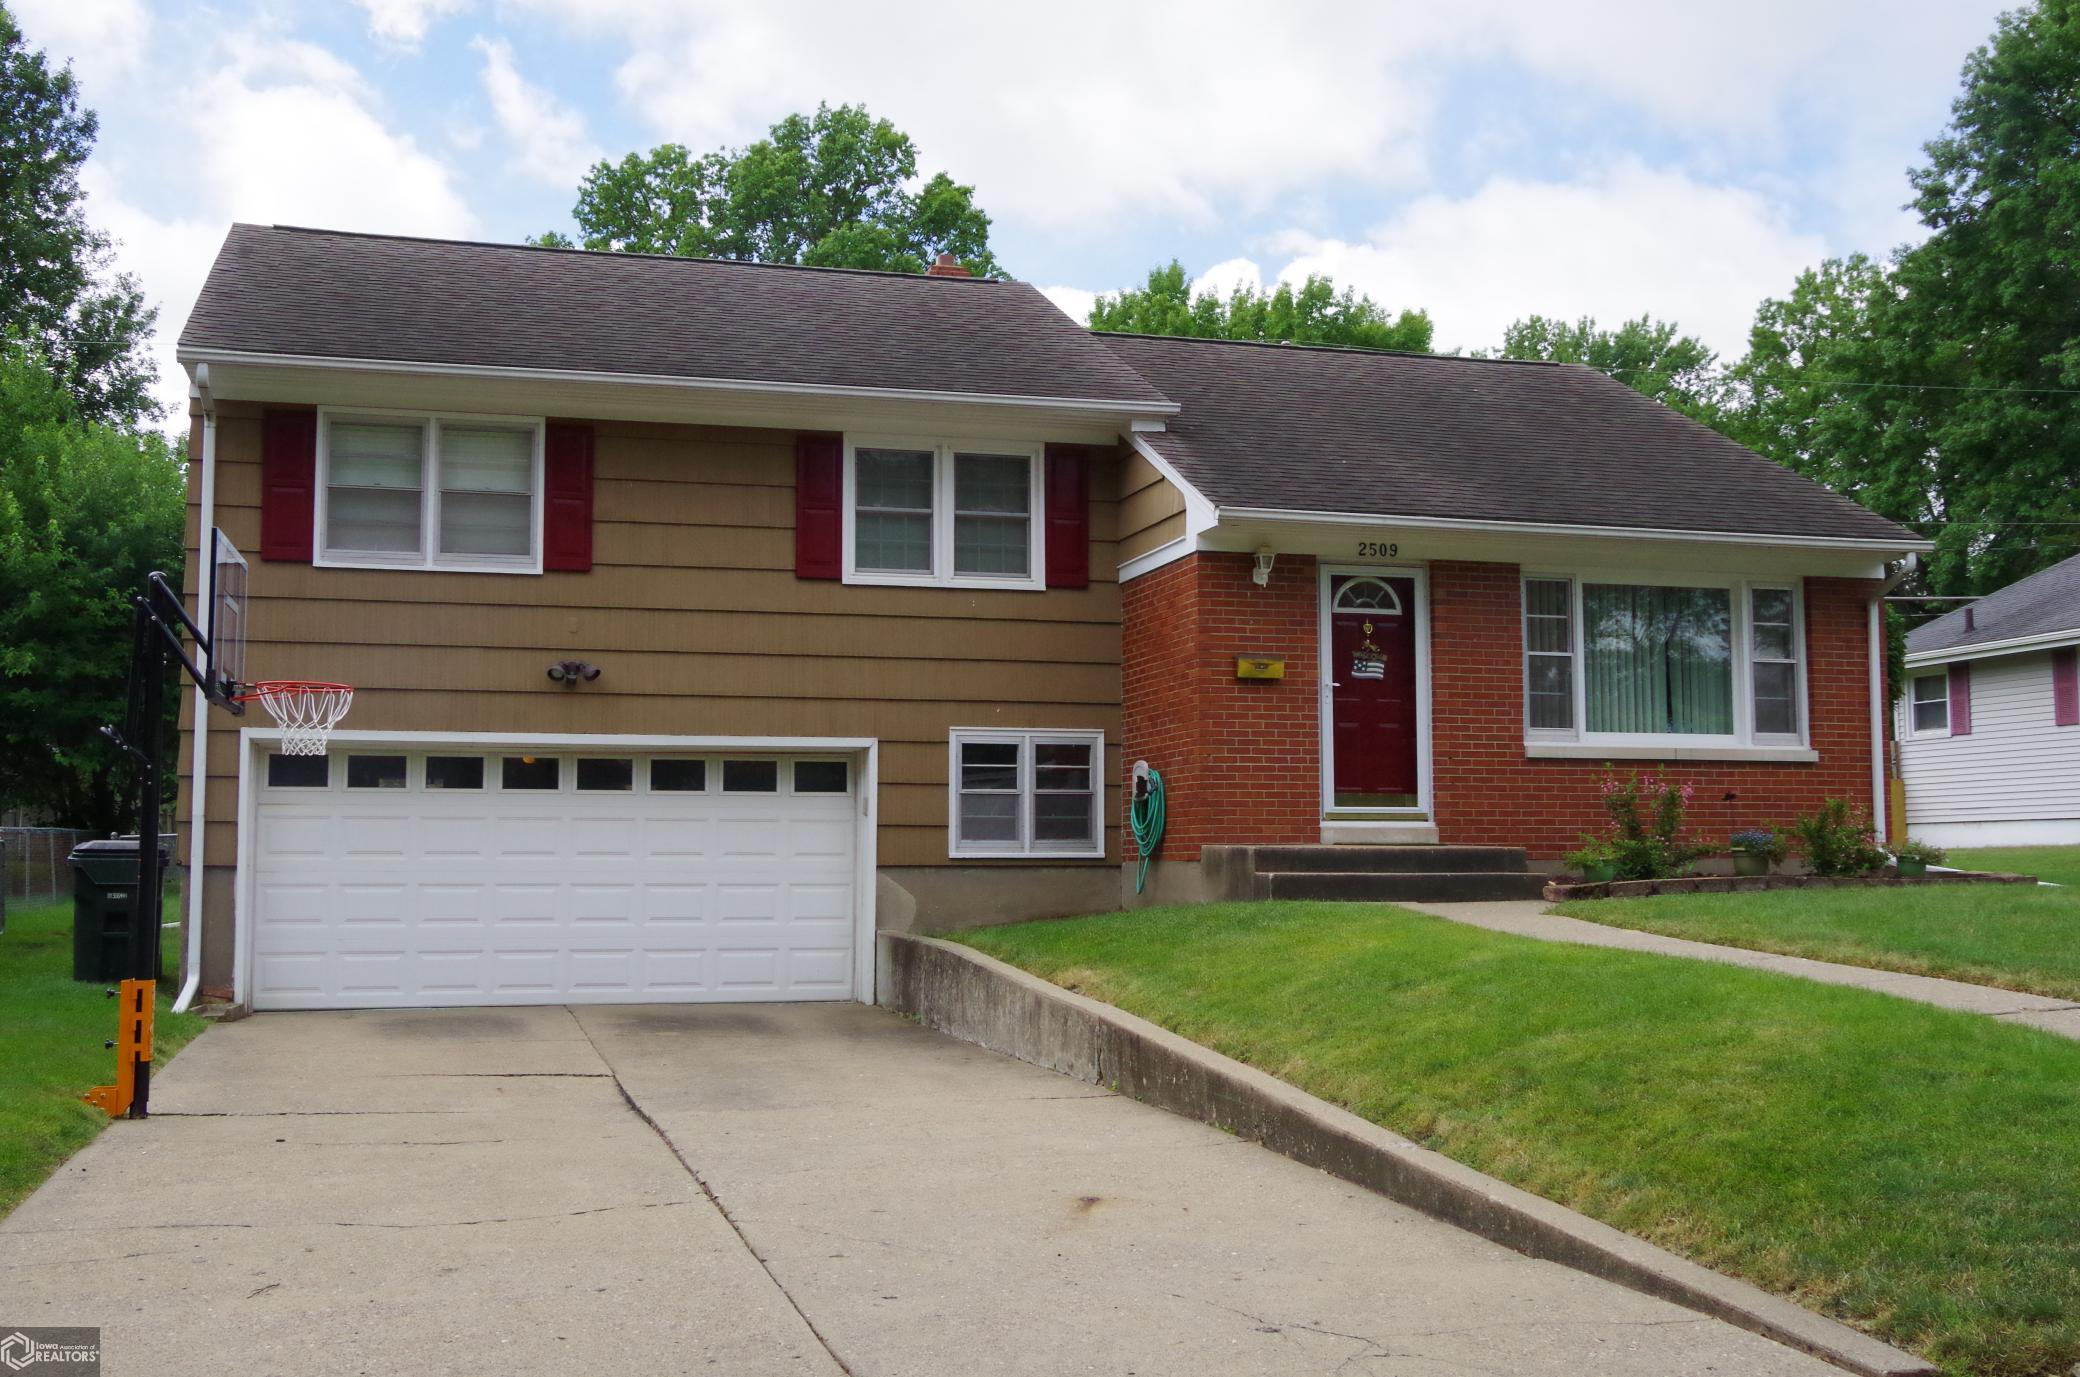 2509 Amelia Property Photo - Burlington, IA real estate listing